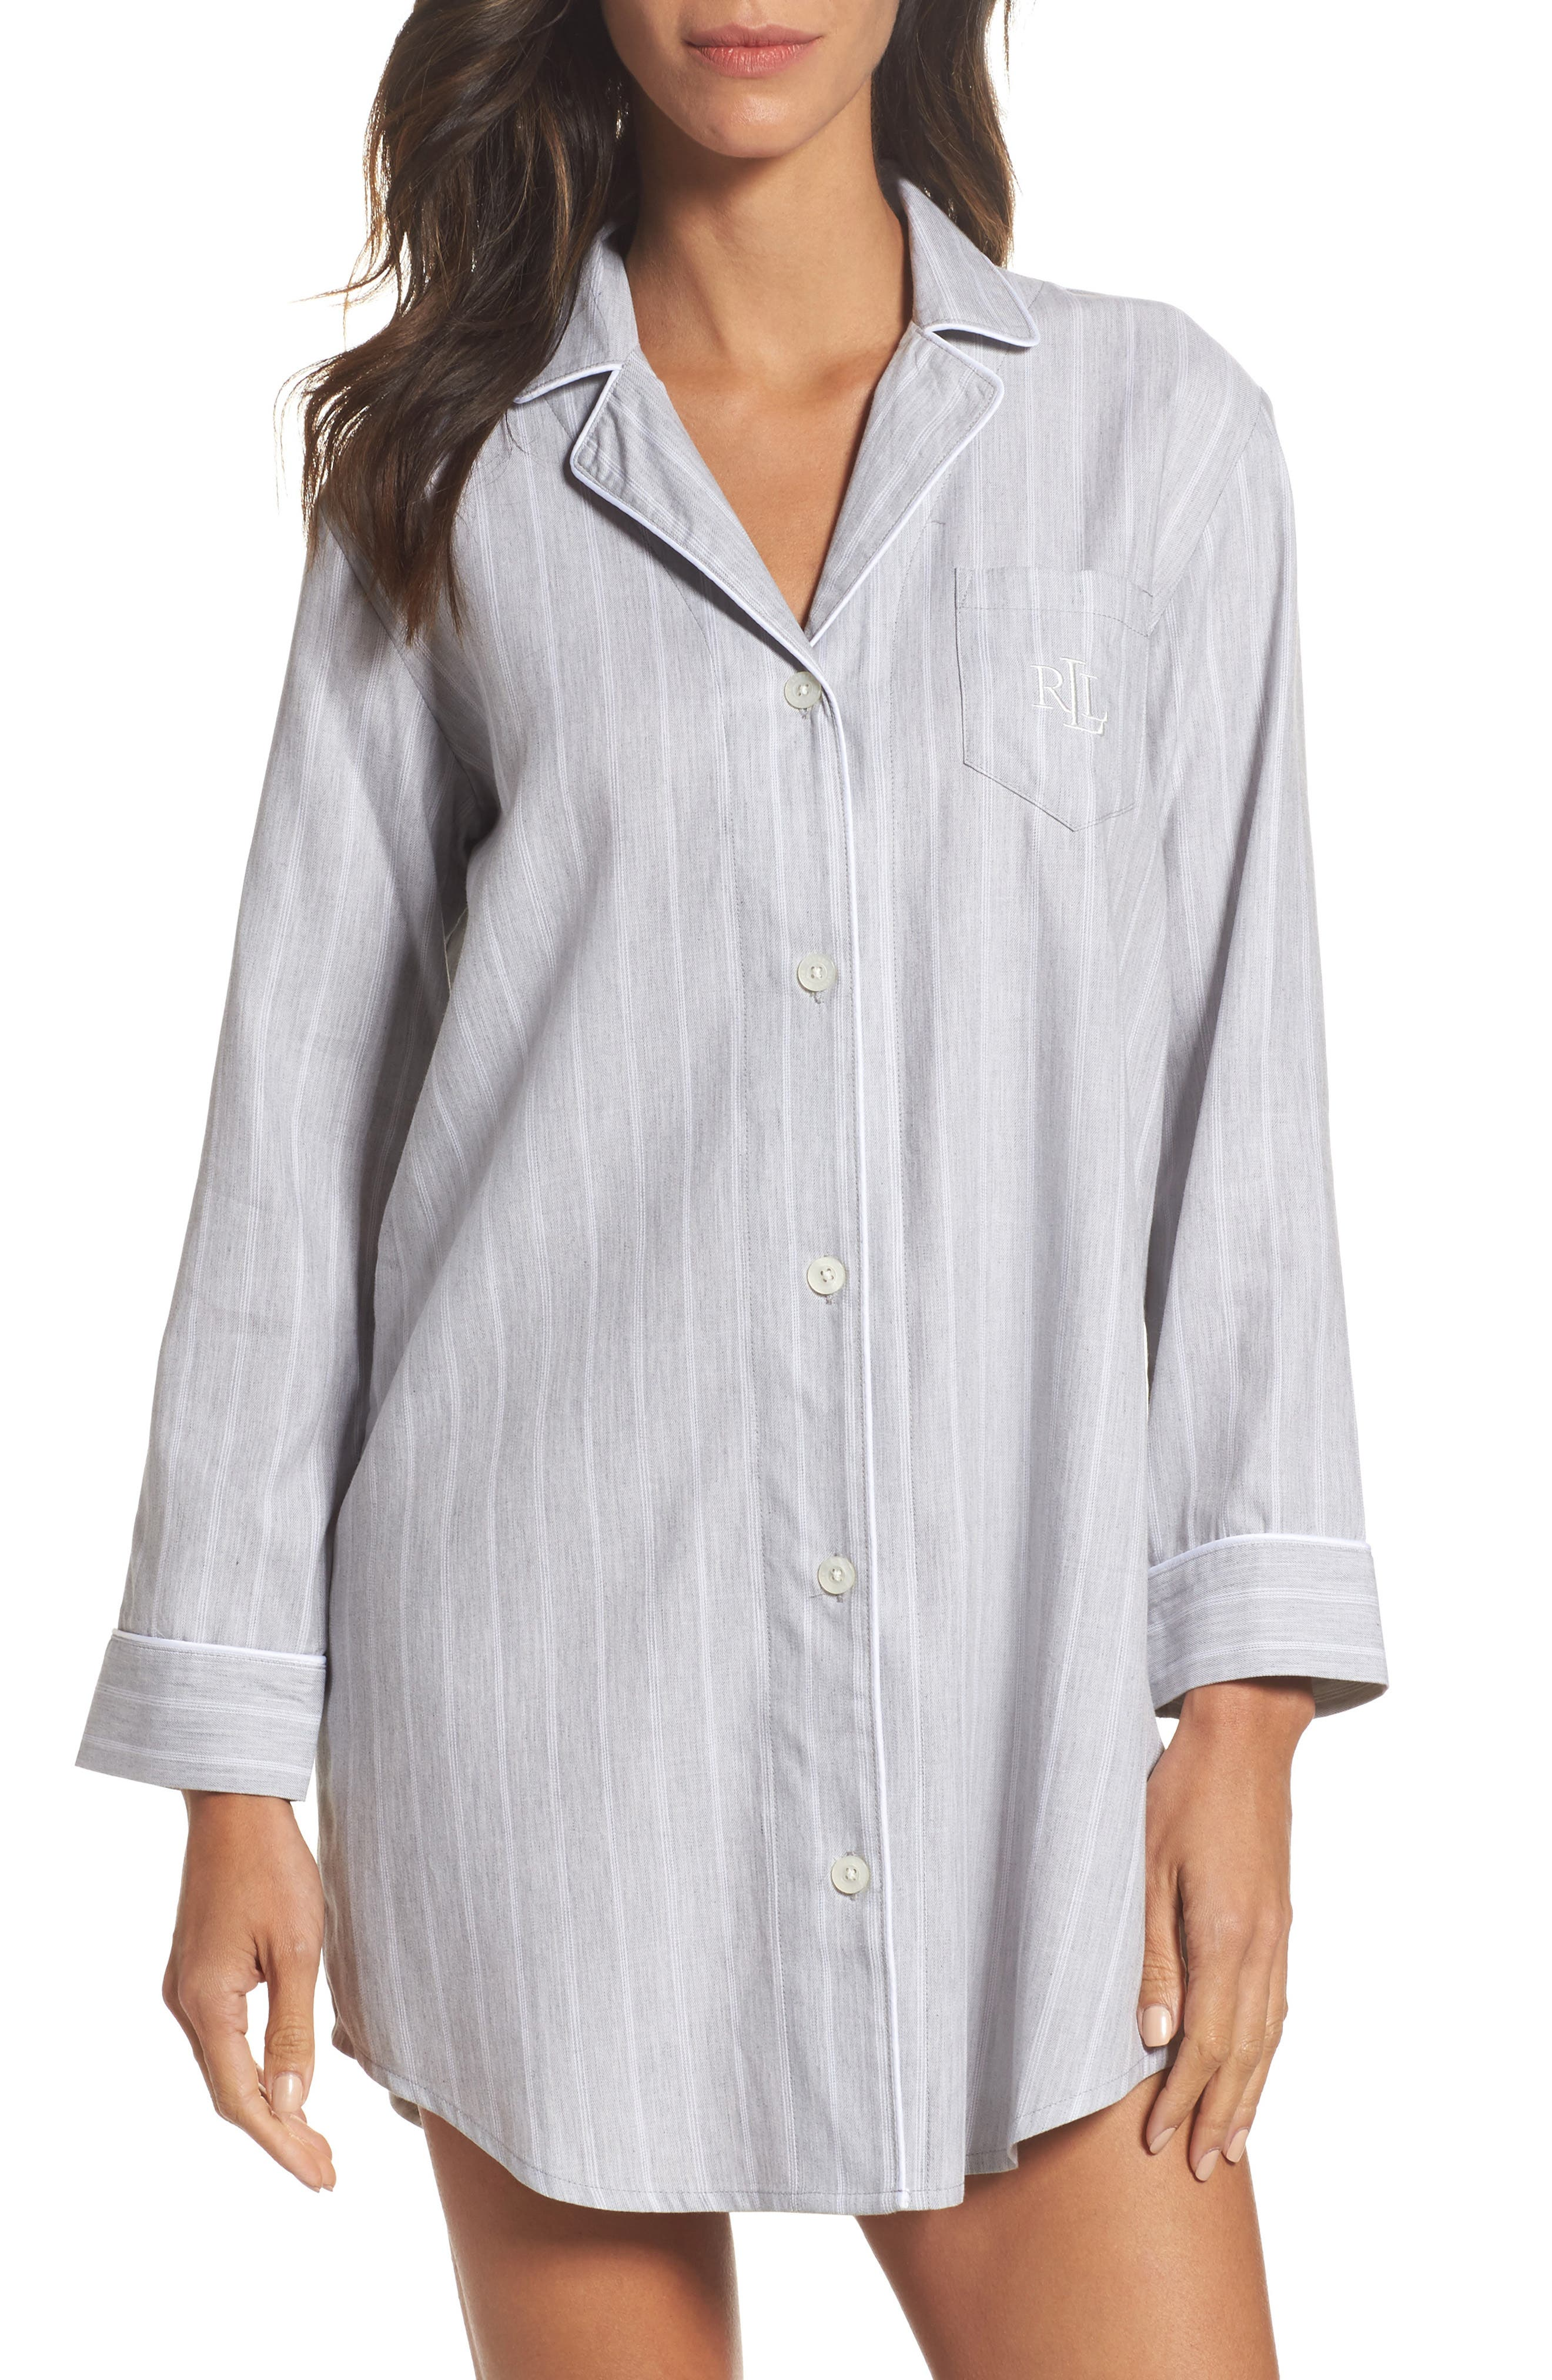 Notch Collar Sleep Shirt,                             Main thumbnail 1, color,                             060